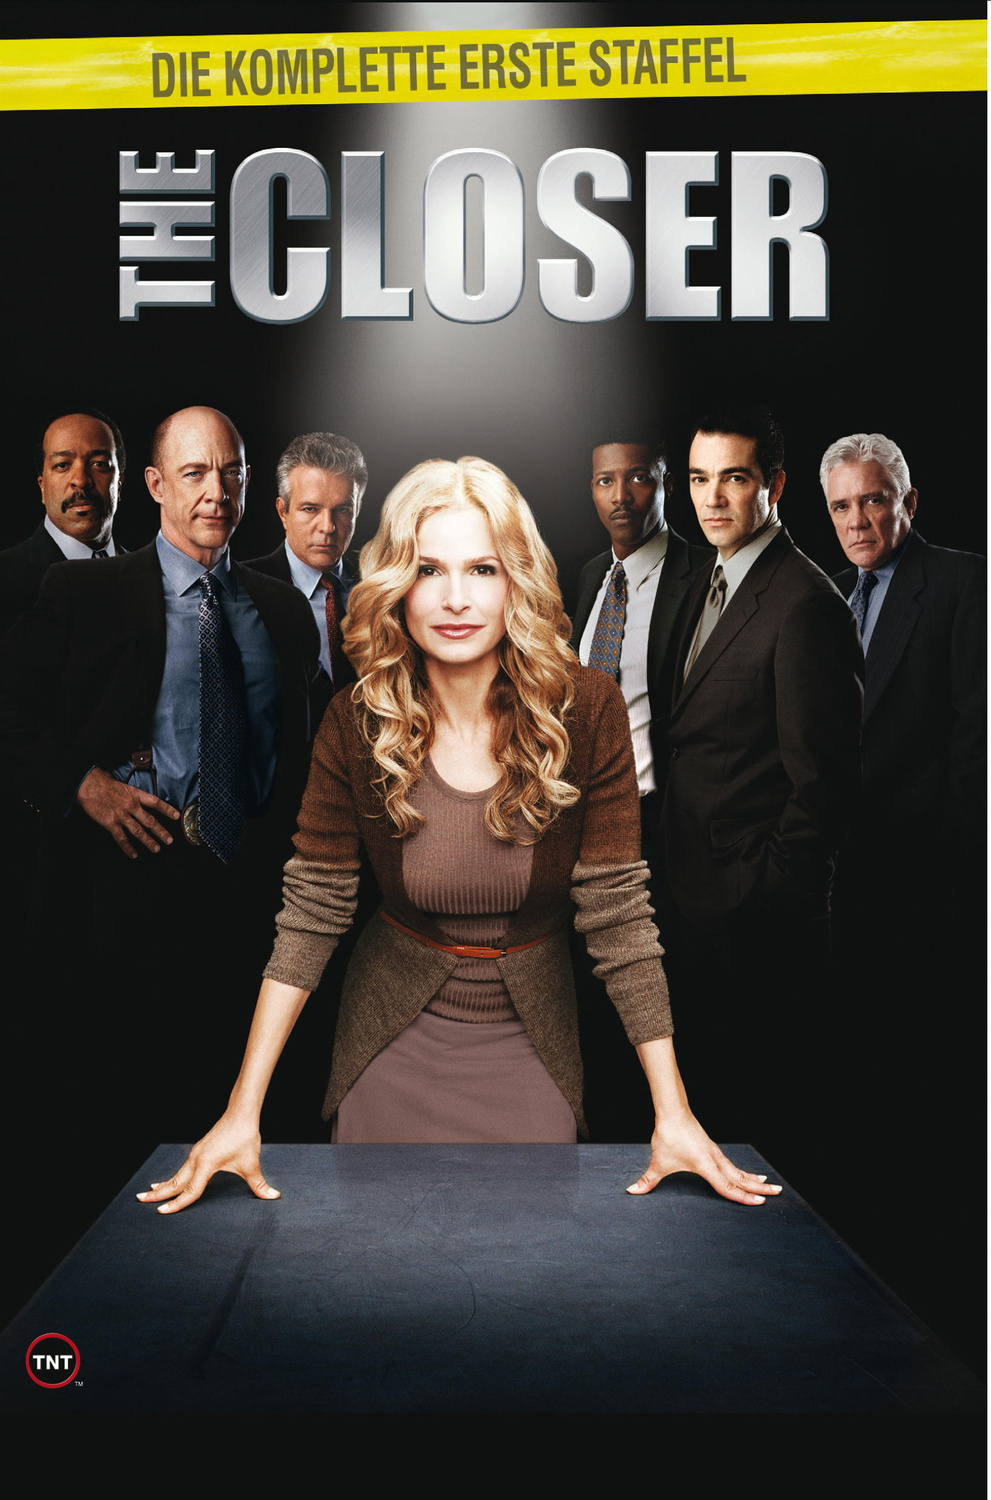 The Closer - Staffel 1